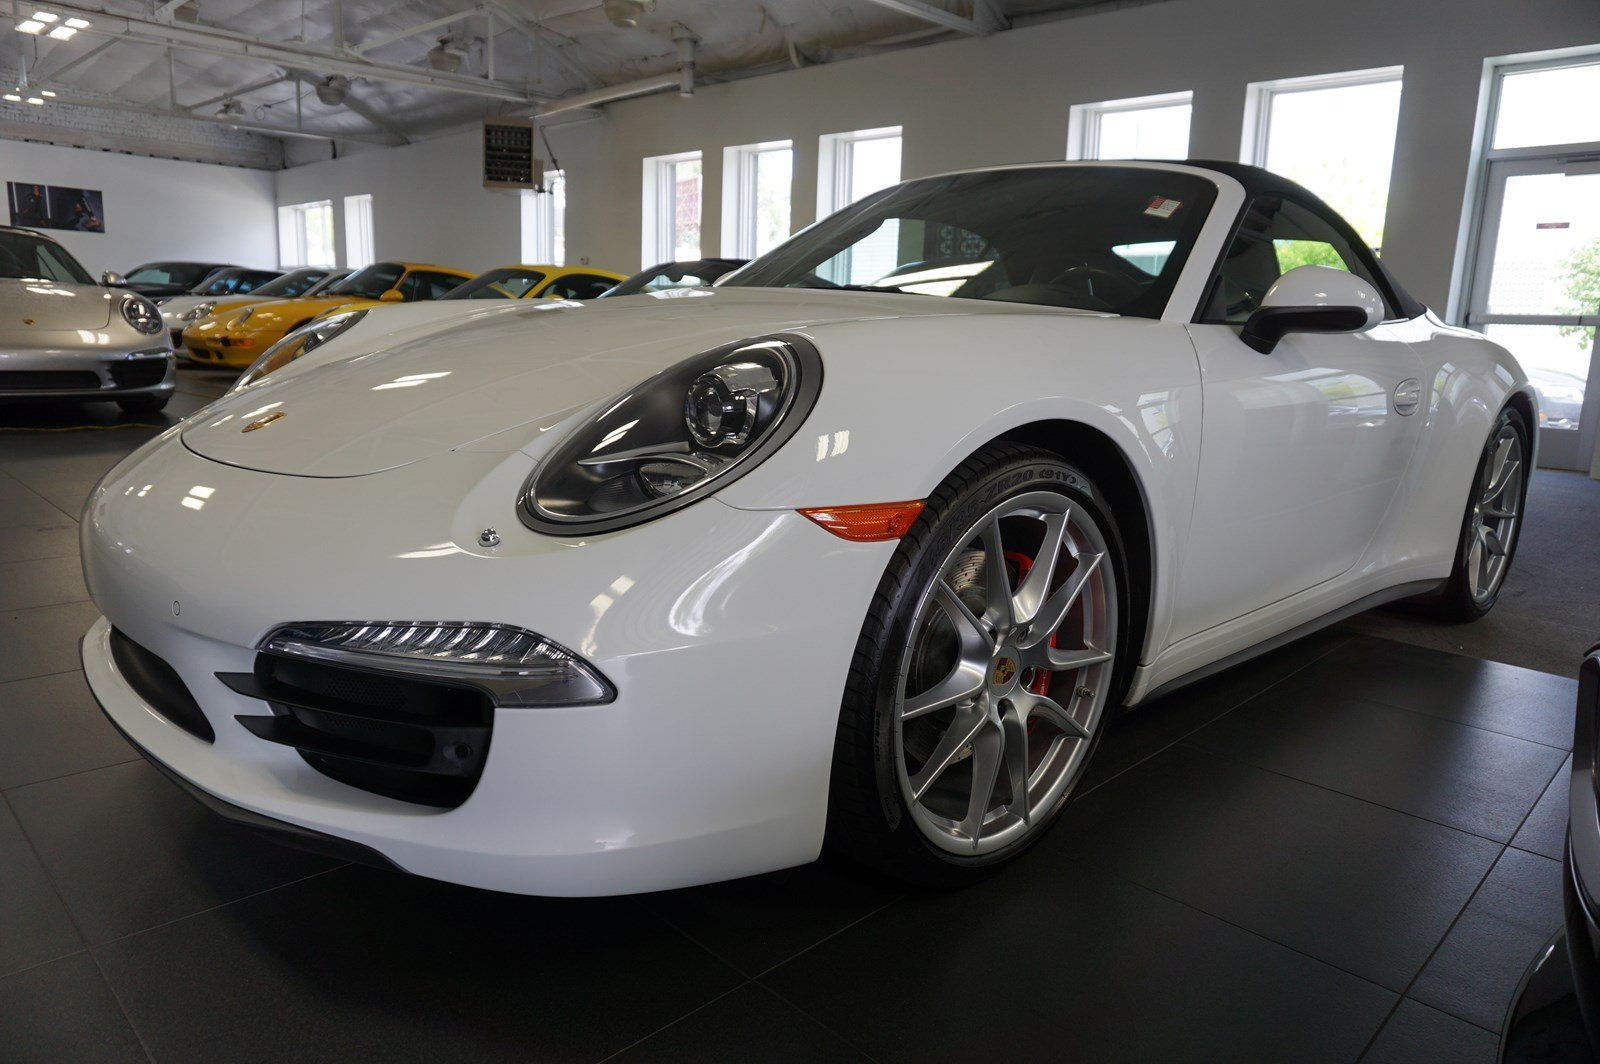 Certified Pre-Owned 2014 Porsche 911 Carrera 4S Cabriolet